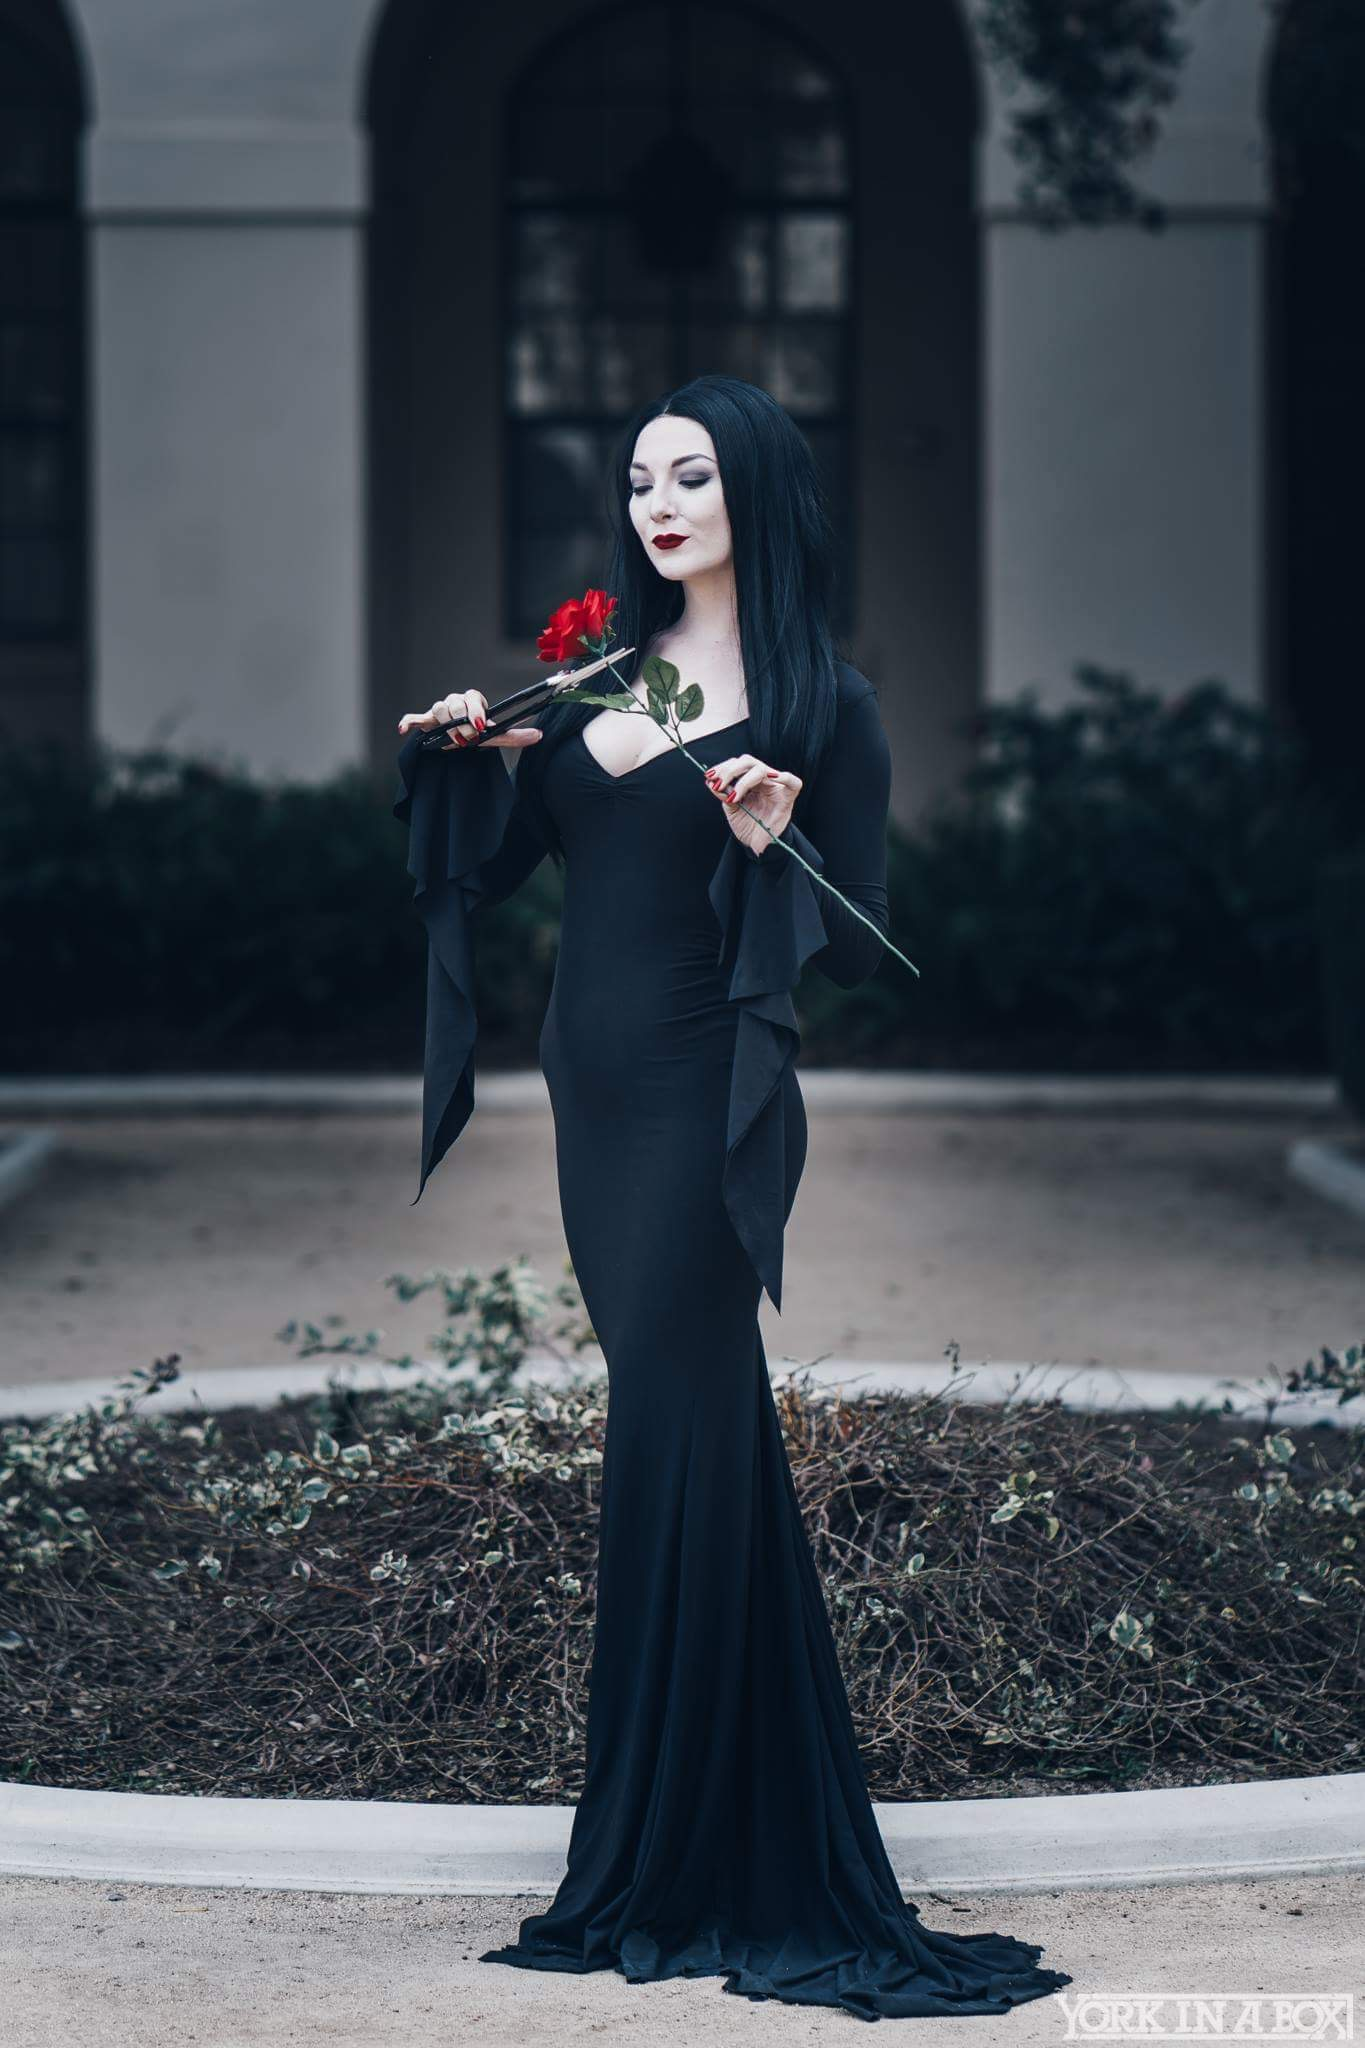 On Morticia Morticia Addams Storenvy Storenvy Dress On Morticia Addams Addams Dress XTPkZOiu